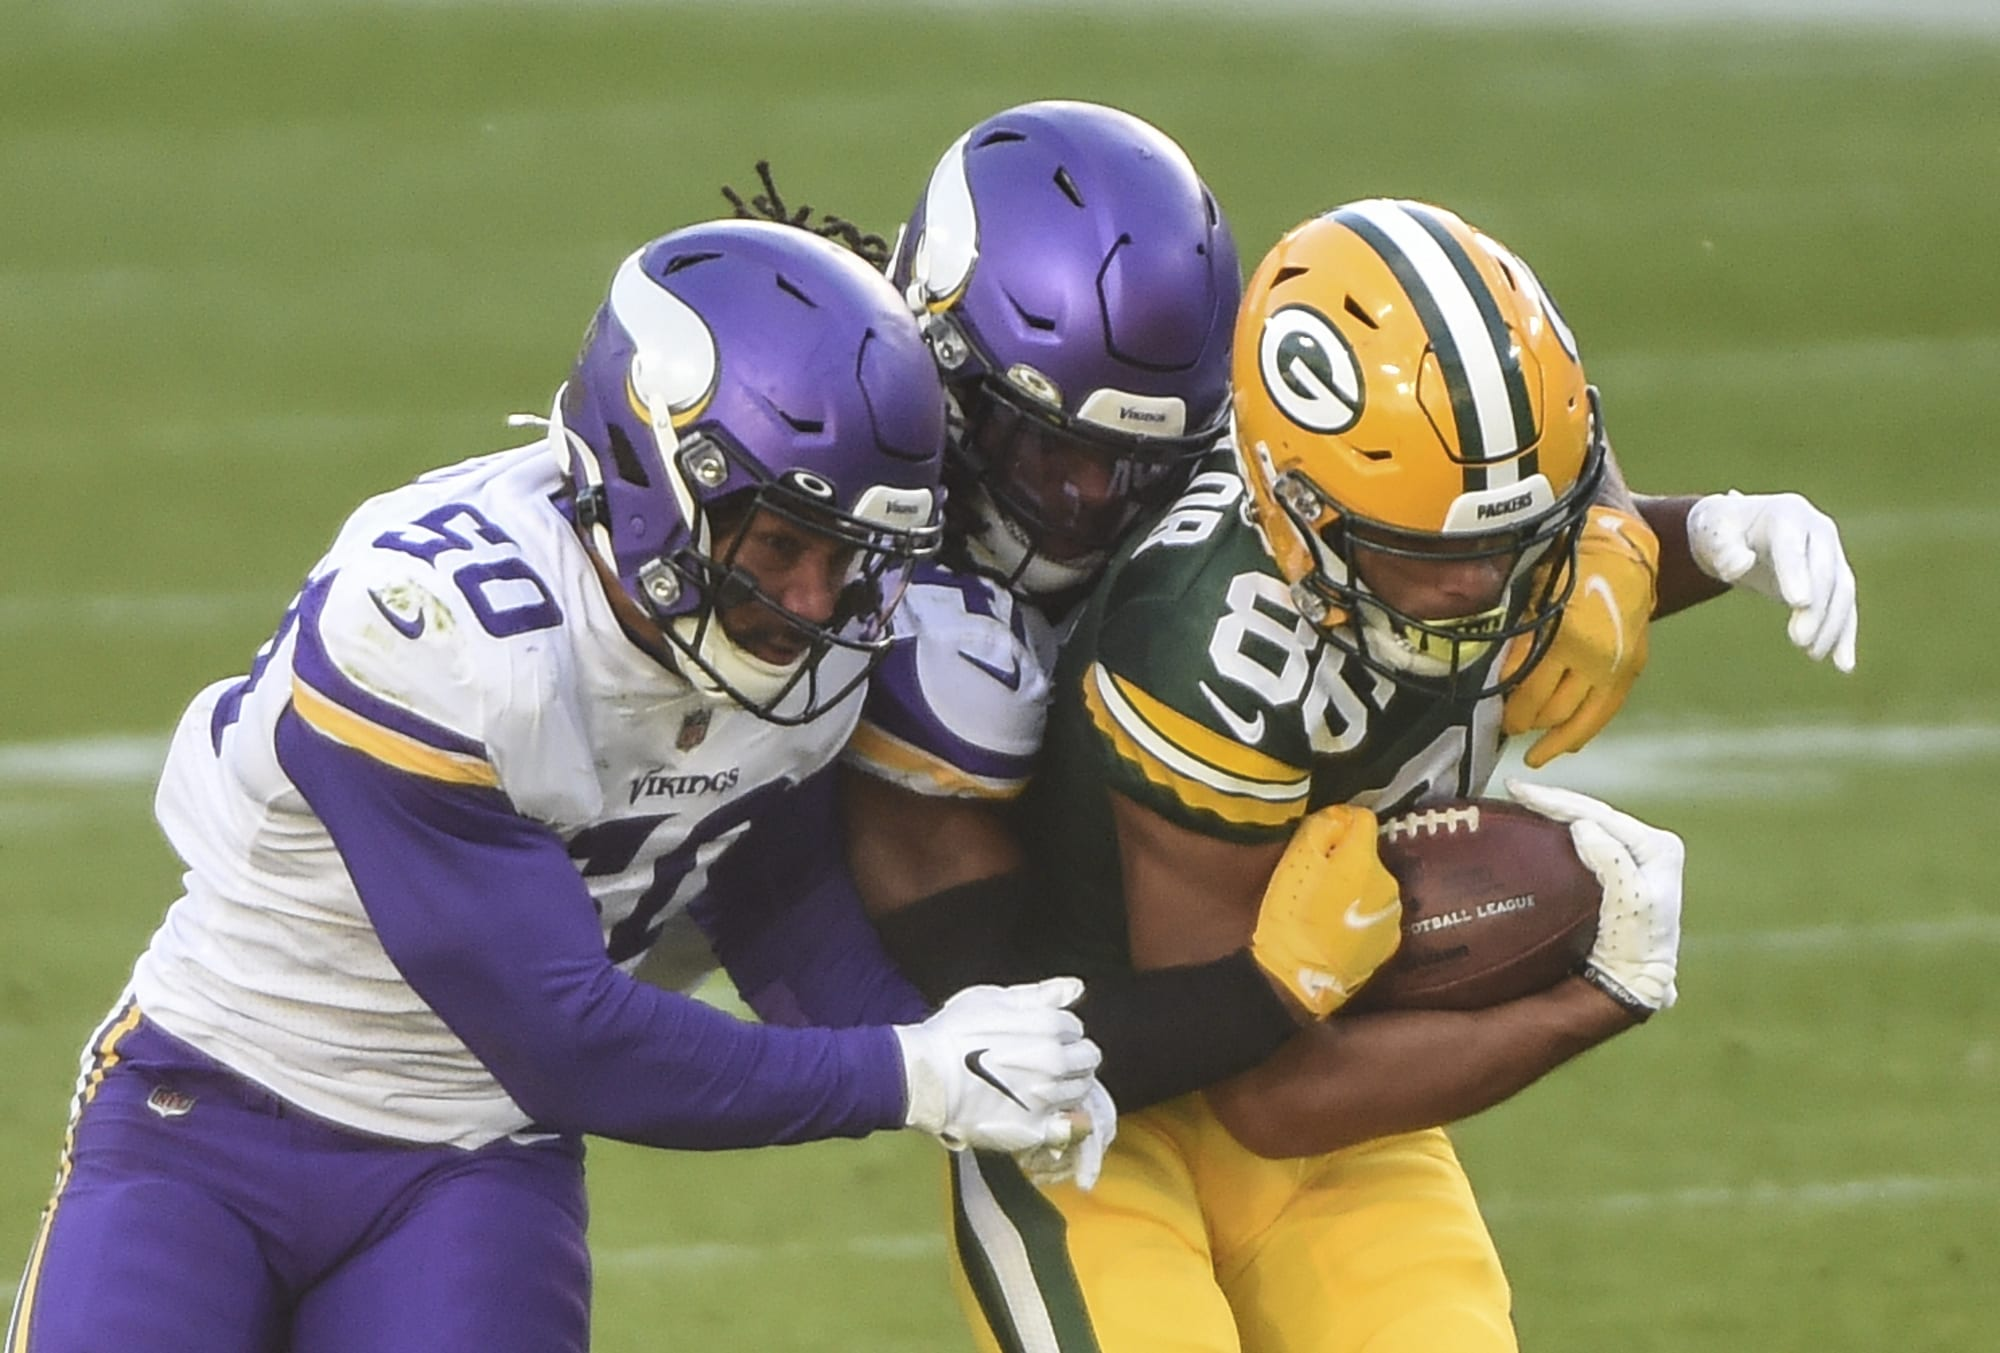 2022 NFL Draft notebook: Minnesota Vikings could surprise this year and more